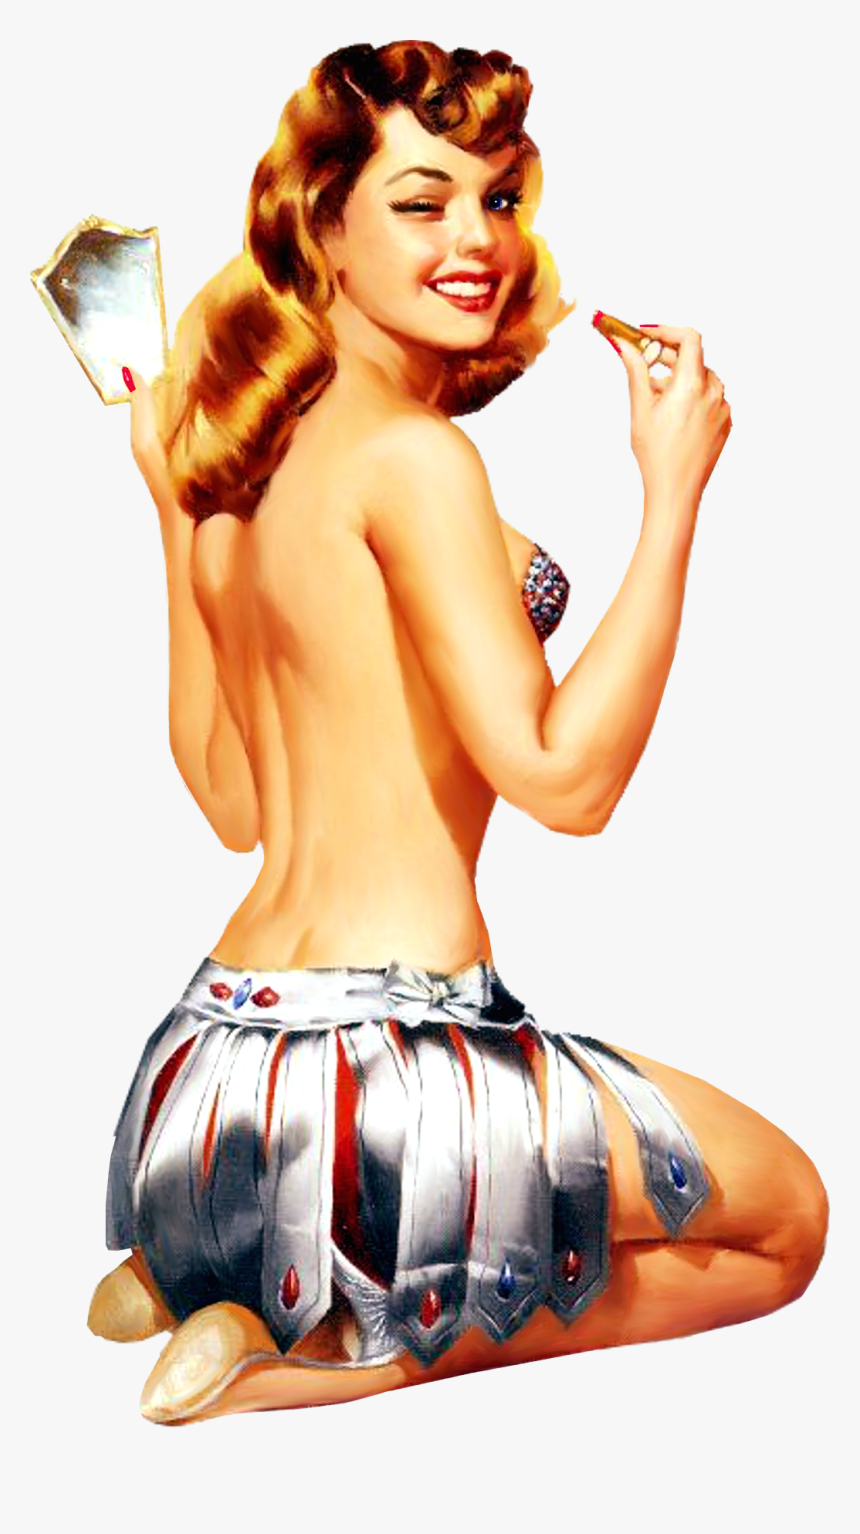 Transparent Pin Up Girls Png - Pinup Girls, Png Download, Free Download